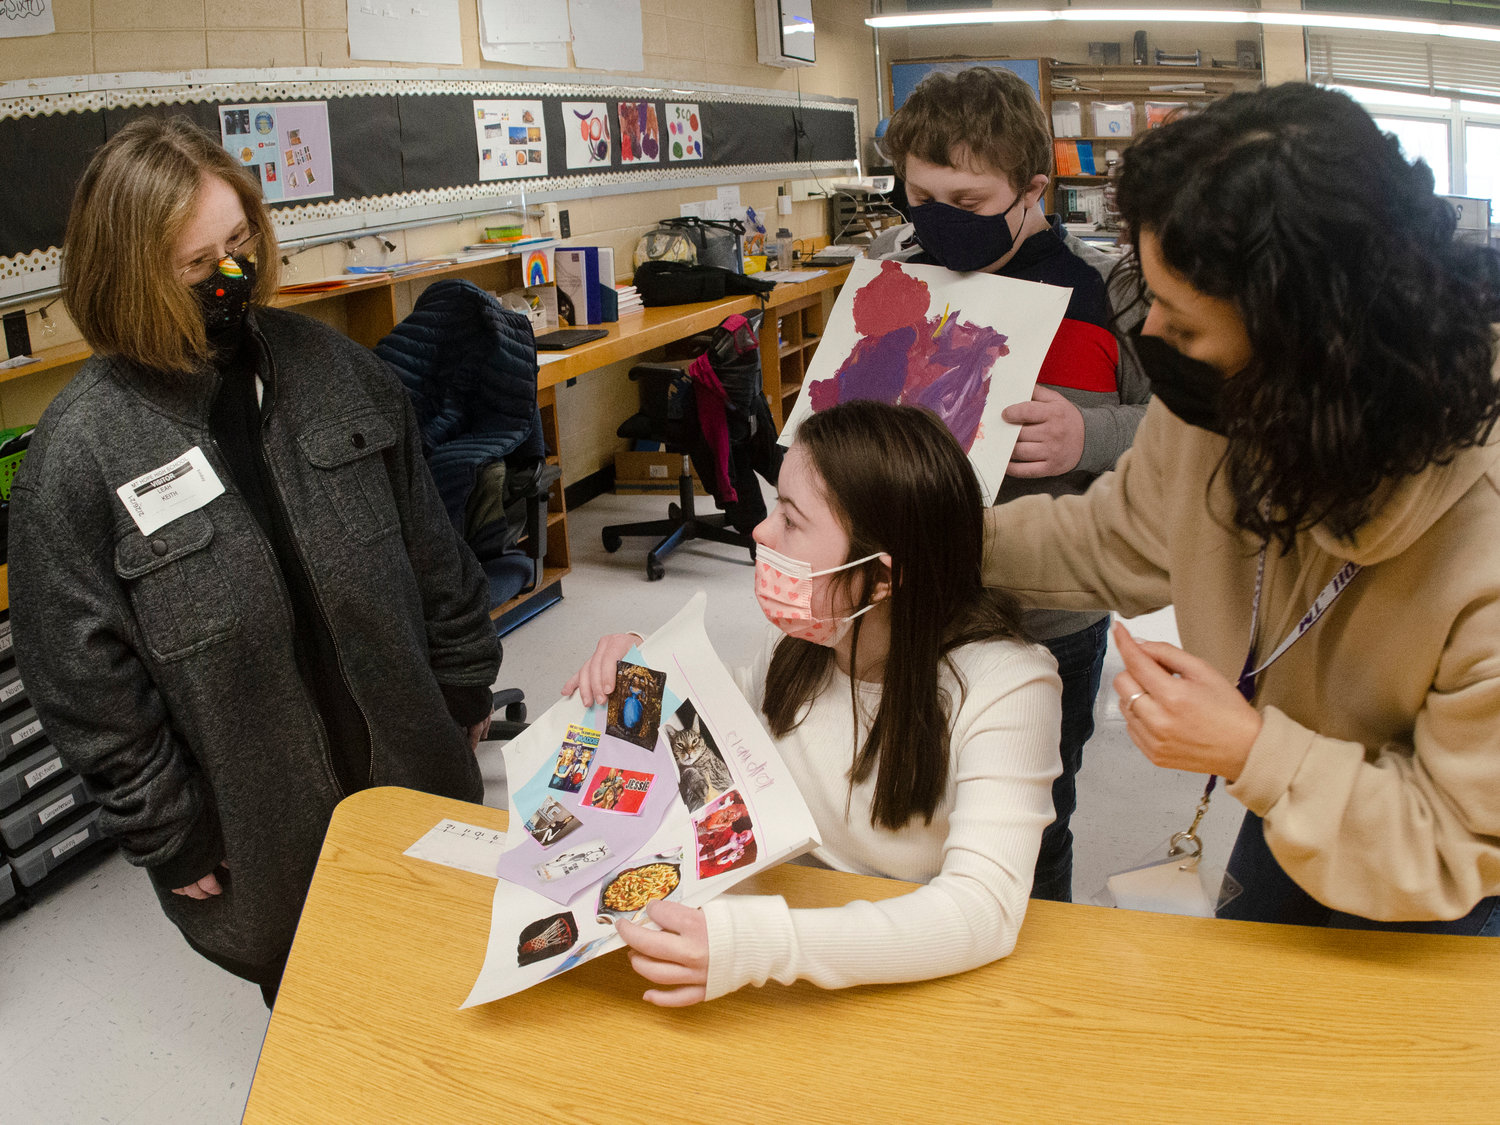 Leah Keith (left) looks on as students Claudia Rezendes and Alan Leach show their artwork with intensive classroom teacher Sabrina Sanchez at Mt. Hope High School.